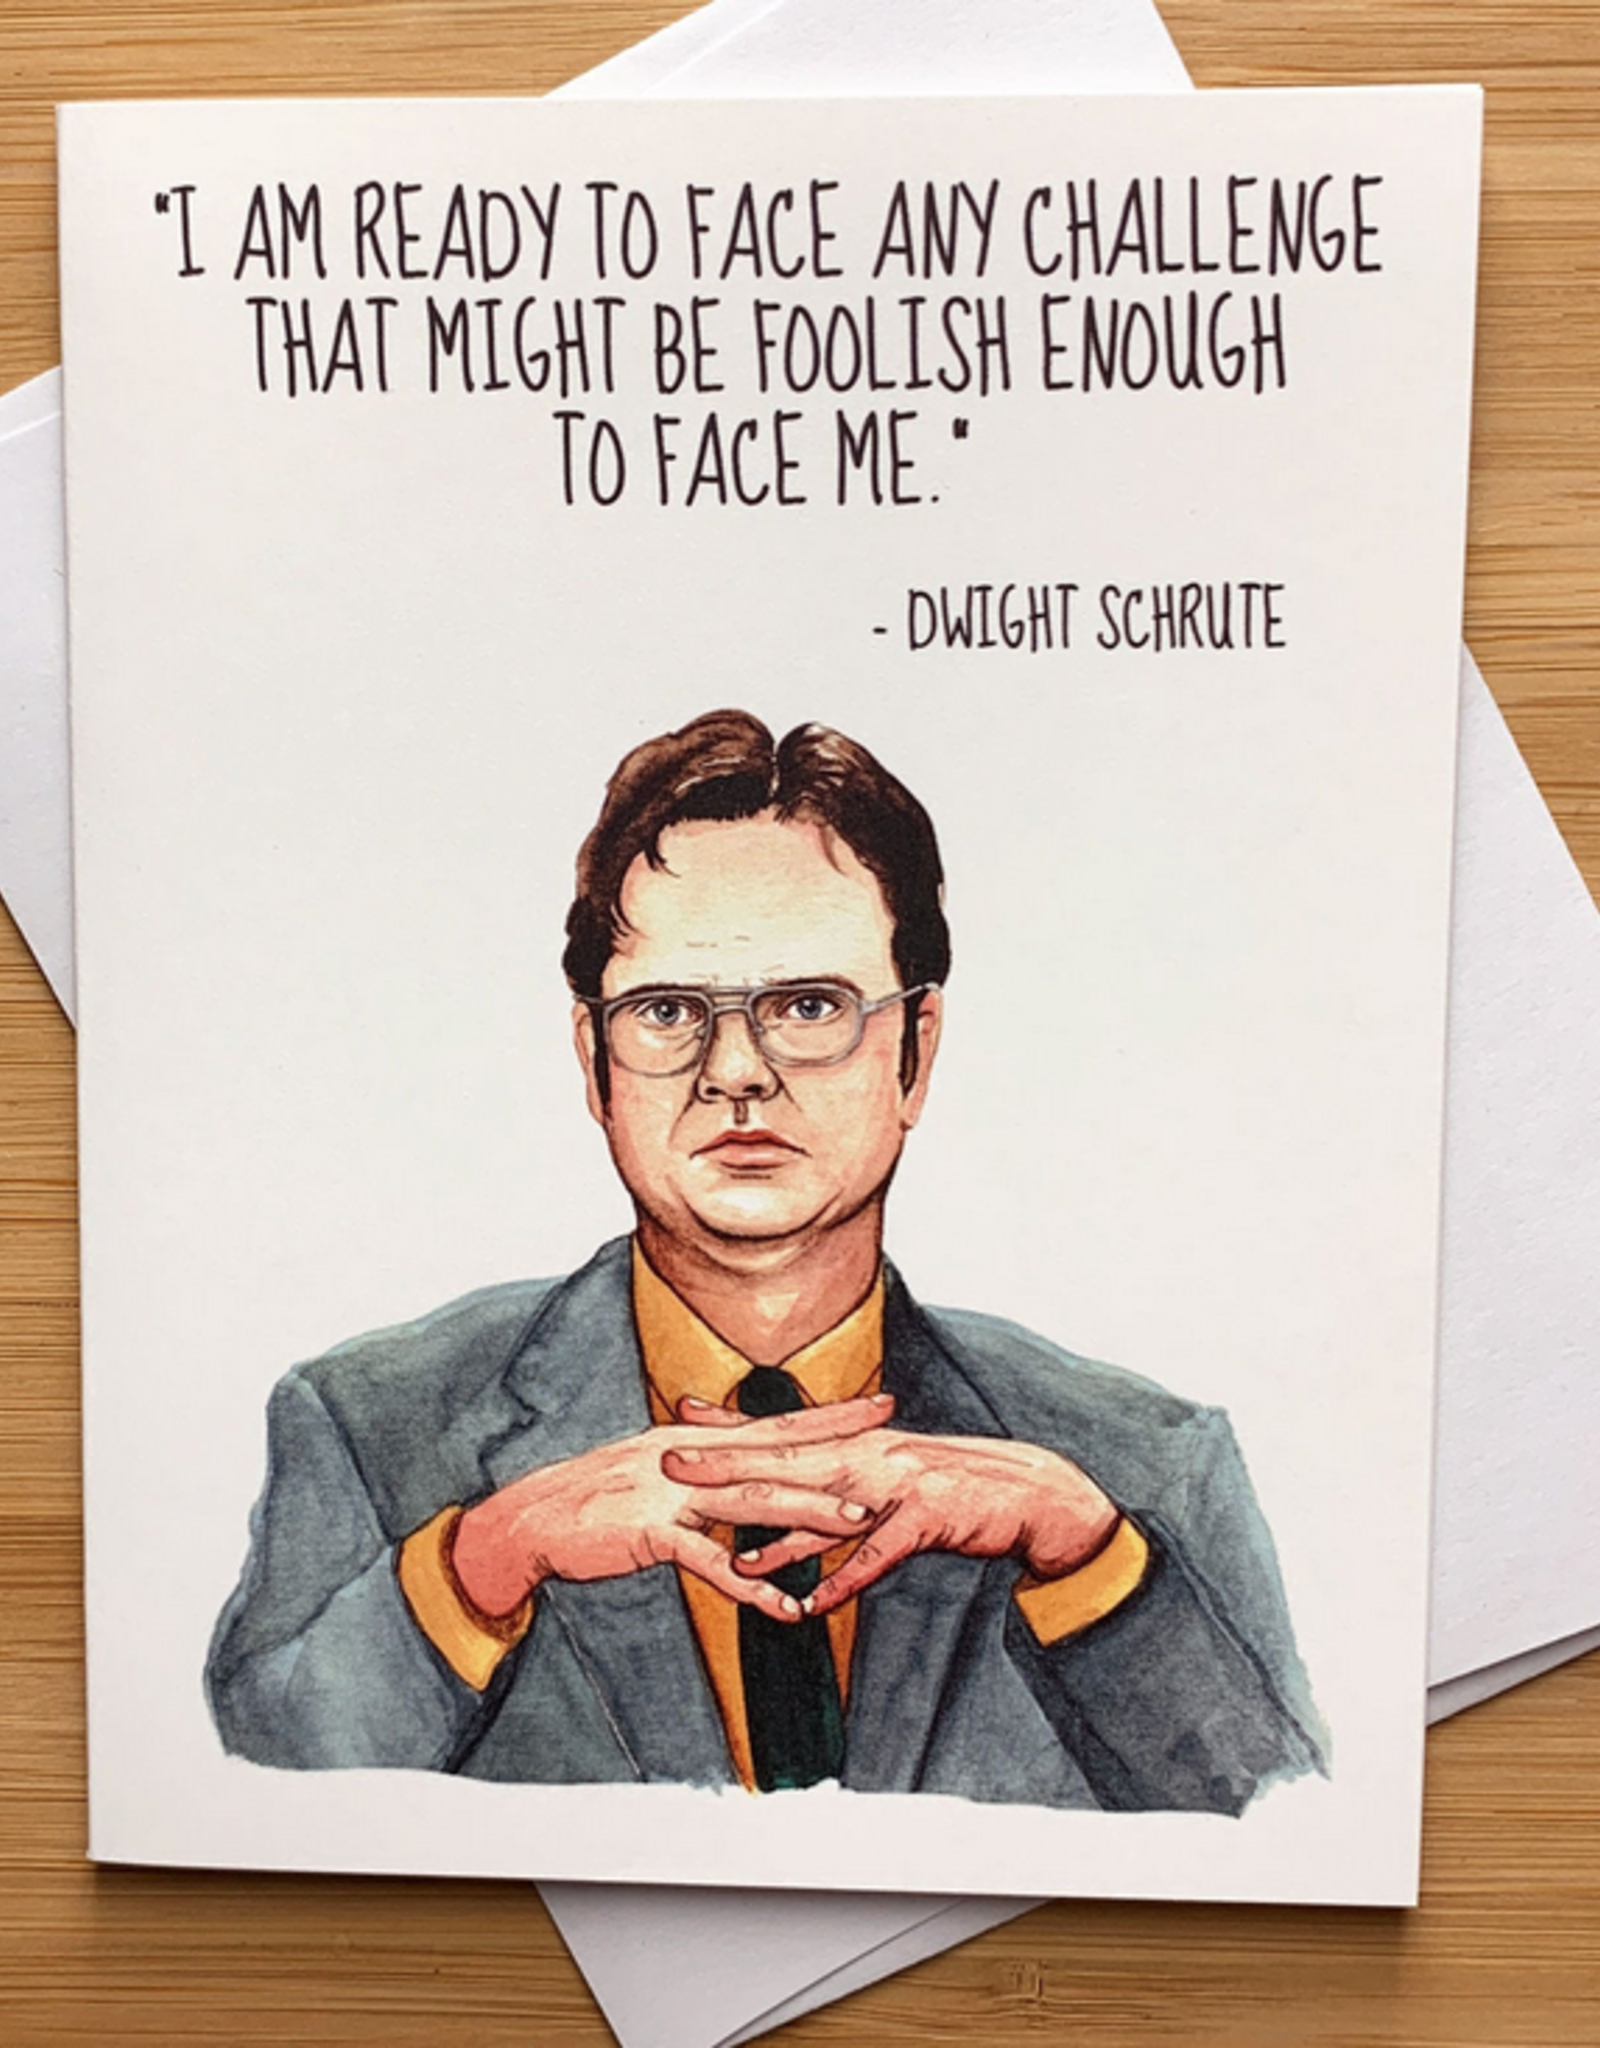 Face Any Challenge (Dwight Schrute) Greeting Card